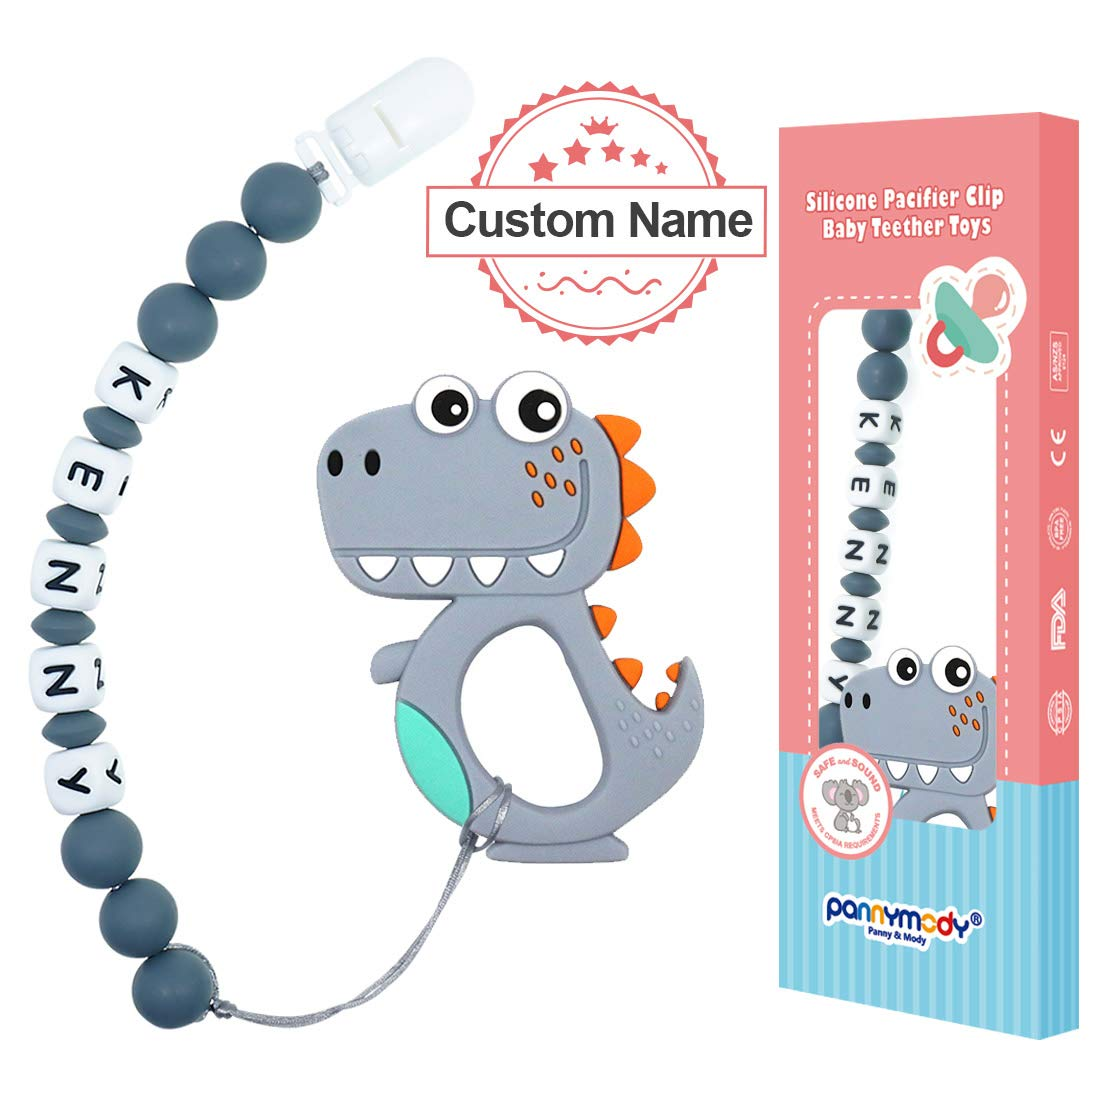 Panny & Mody Personalized Pacifier Clip with Name and Dinosaur Baby Teething Toys, Custom Made Silicone Pacifier Clip with Bite Beads for Day Care Baby Shower Gift(Grey)